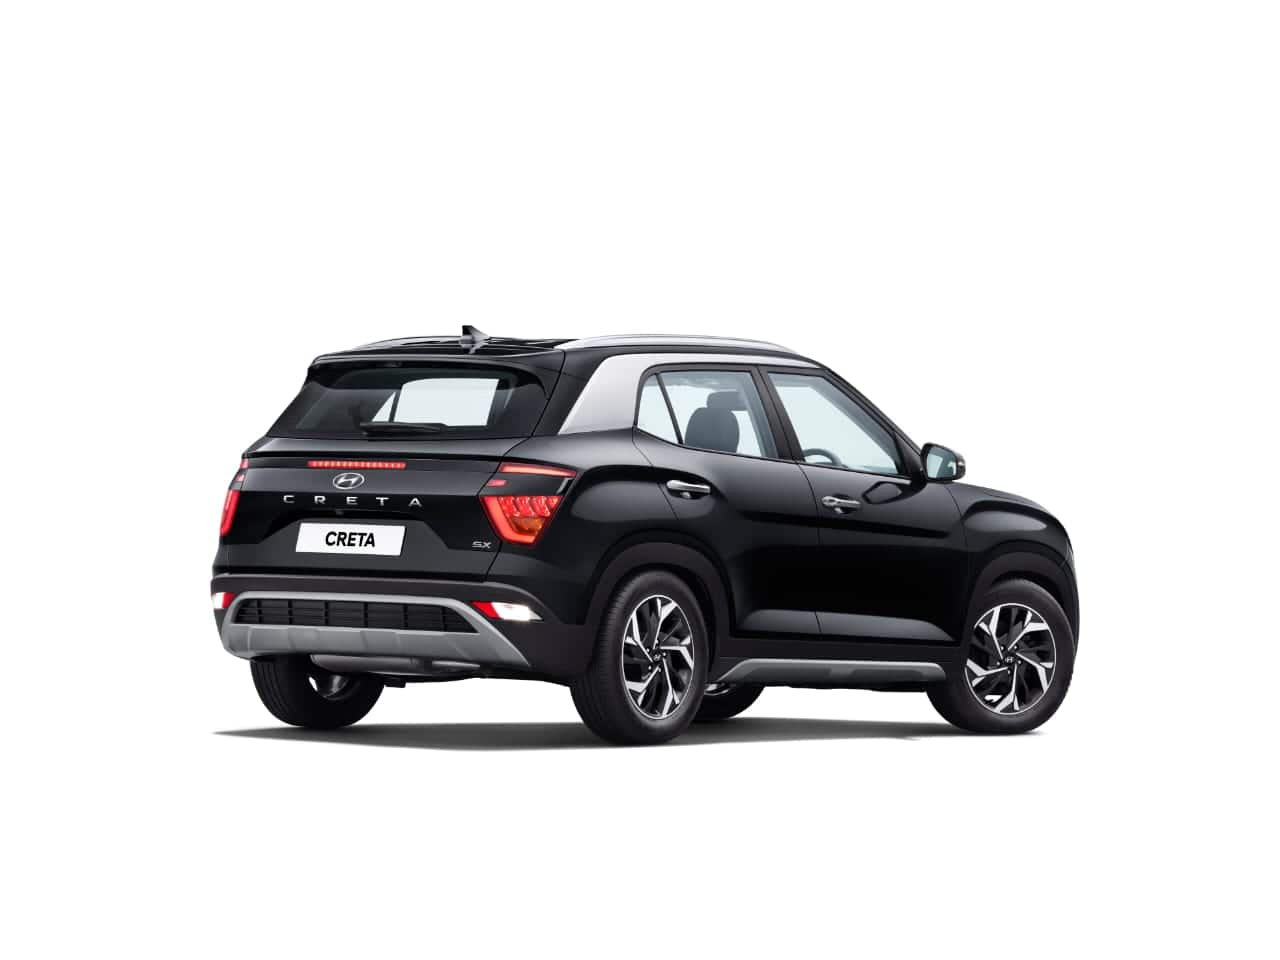 Hyundai Motor India, the country's second biggest carmaker, clocked sales of 25,001 units in the domestic market in May 2021, recording a growth of 263 percent. In May 2020 the company had sold 6,883 units. (Image: Hyundai)